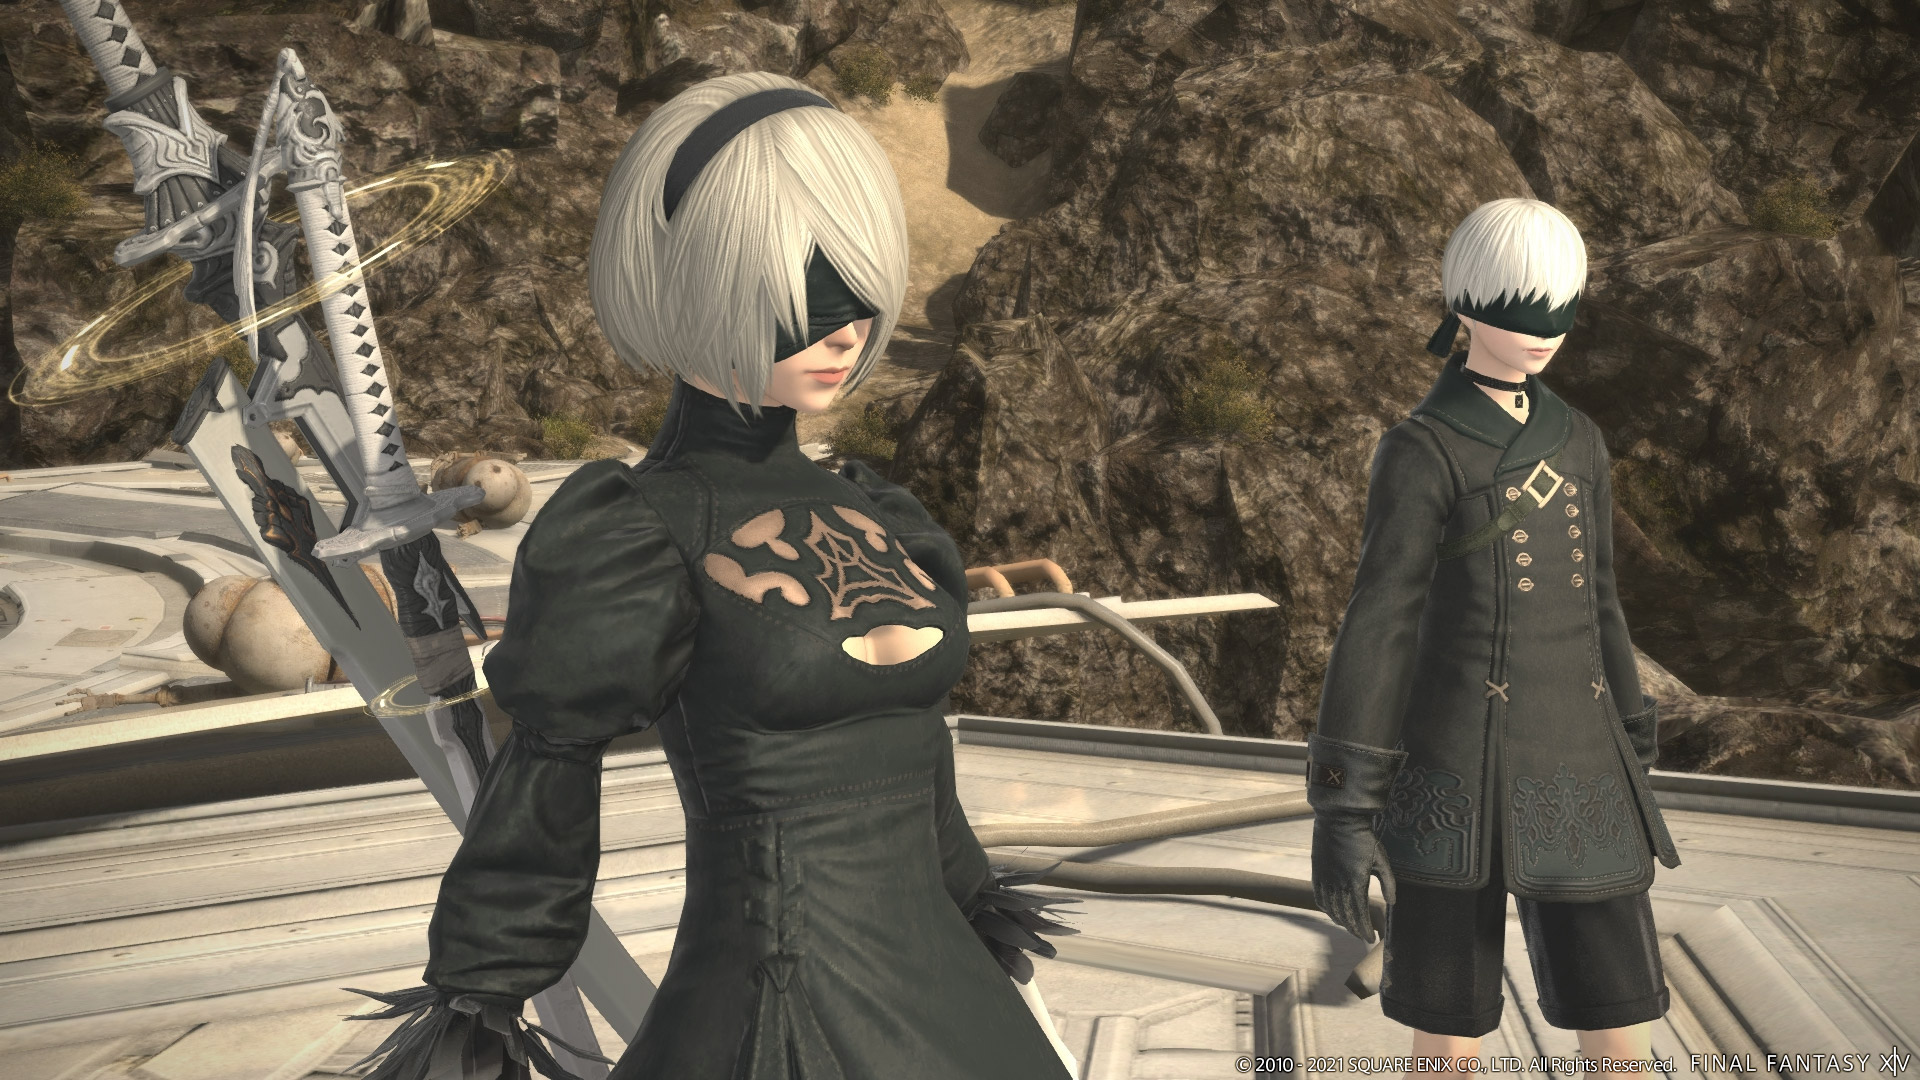 2B and 9S from Nier: Automata stand on a platform in Final Fantasy 14